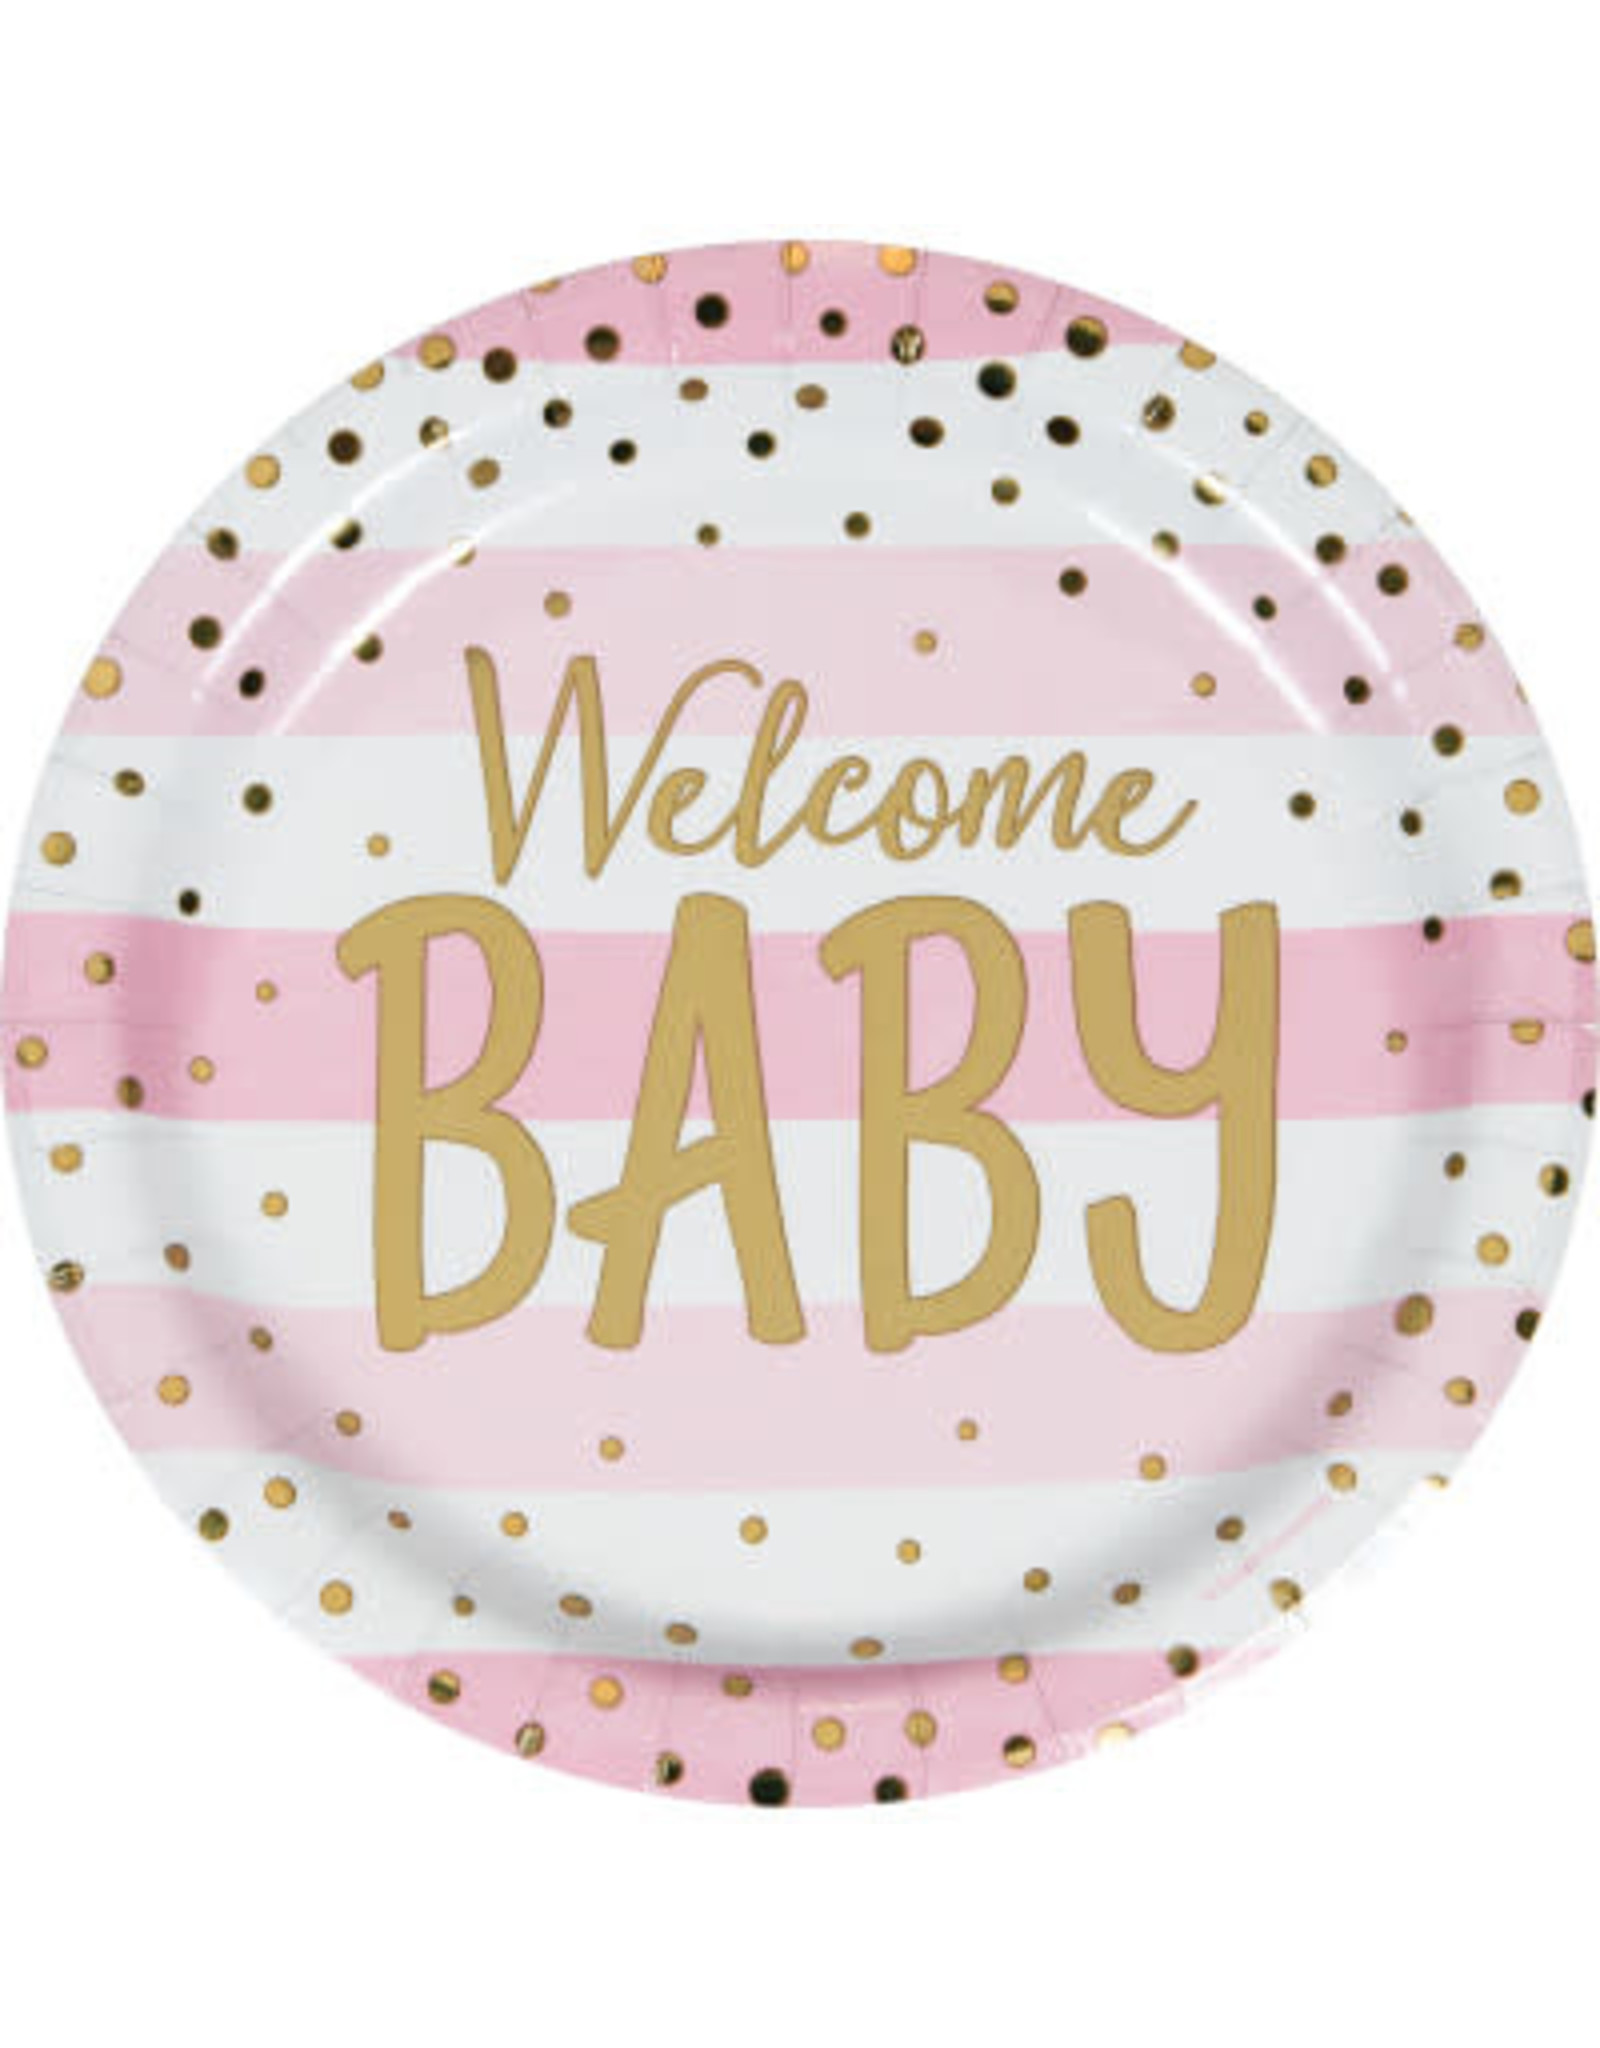 "PPART Pink & Gold 'Welcome Baby' 9"" Plates - 8ct."